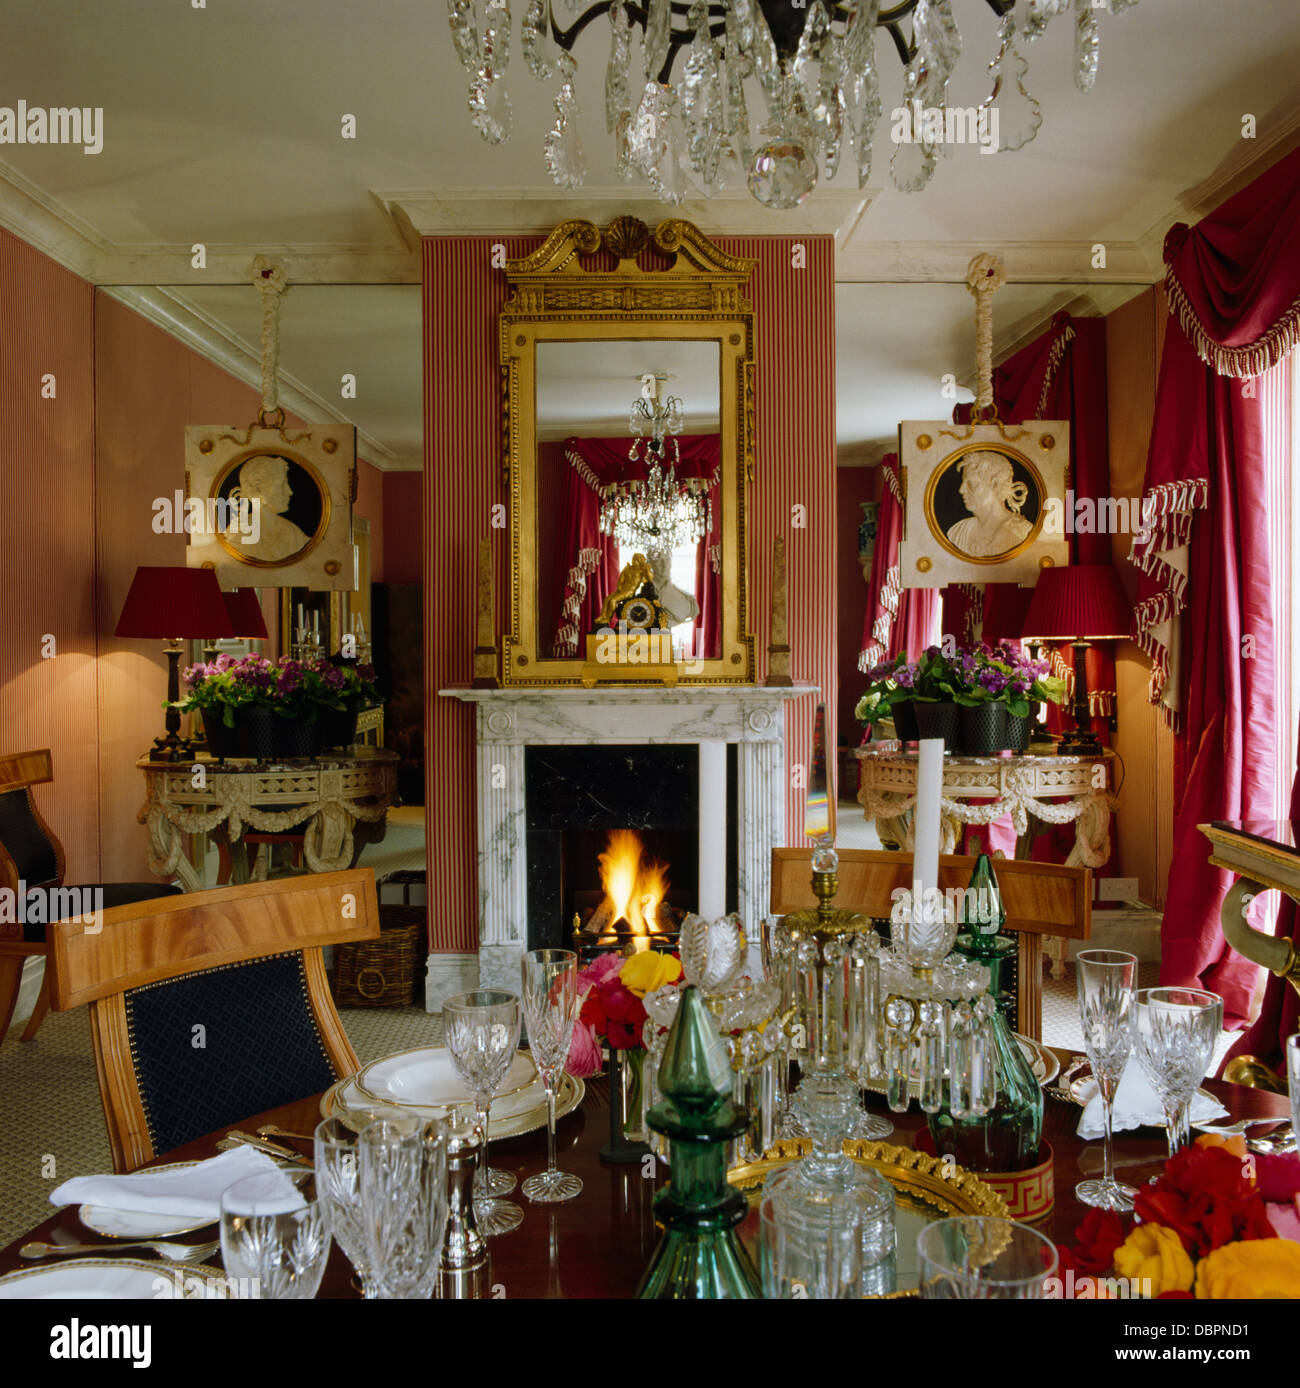 Mirrored Alcoves On Either Side Of Fireplace Below Antique Mirror In Elegant Red Dining Room With Table Set For Lunch